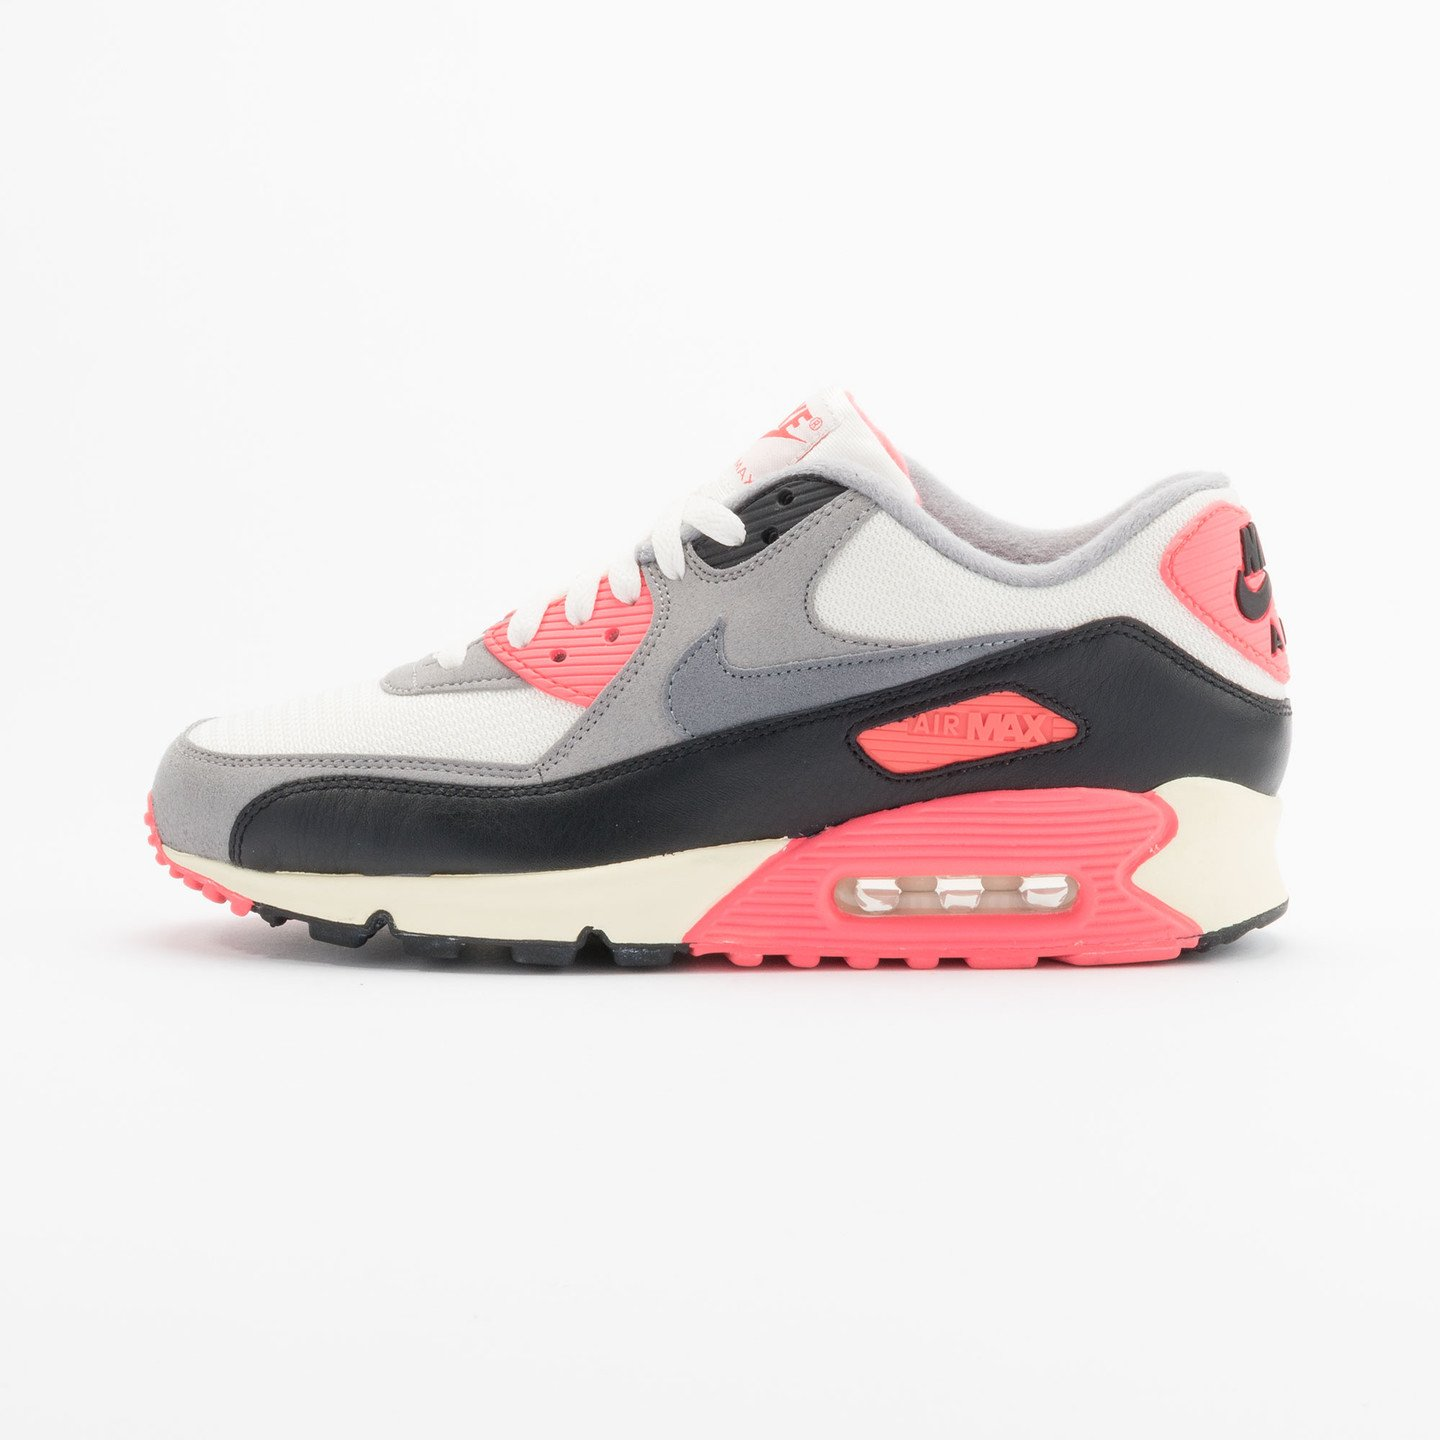 Nike Air Max 90 OG Vintage Infrared Sail/Cool Grey-Mdm Grey-Infrrd 543361-161-40.5